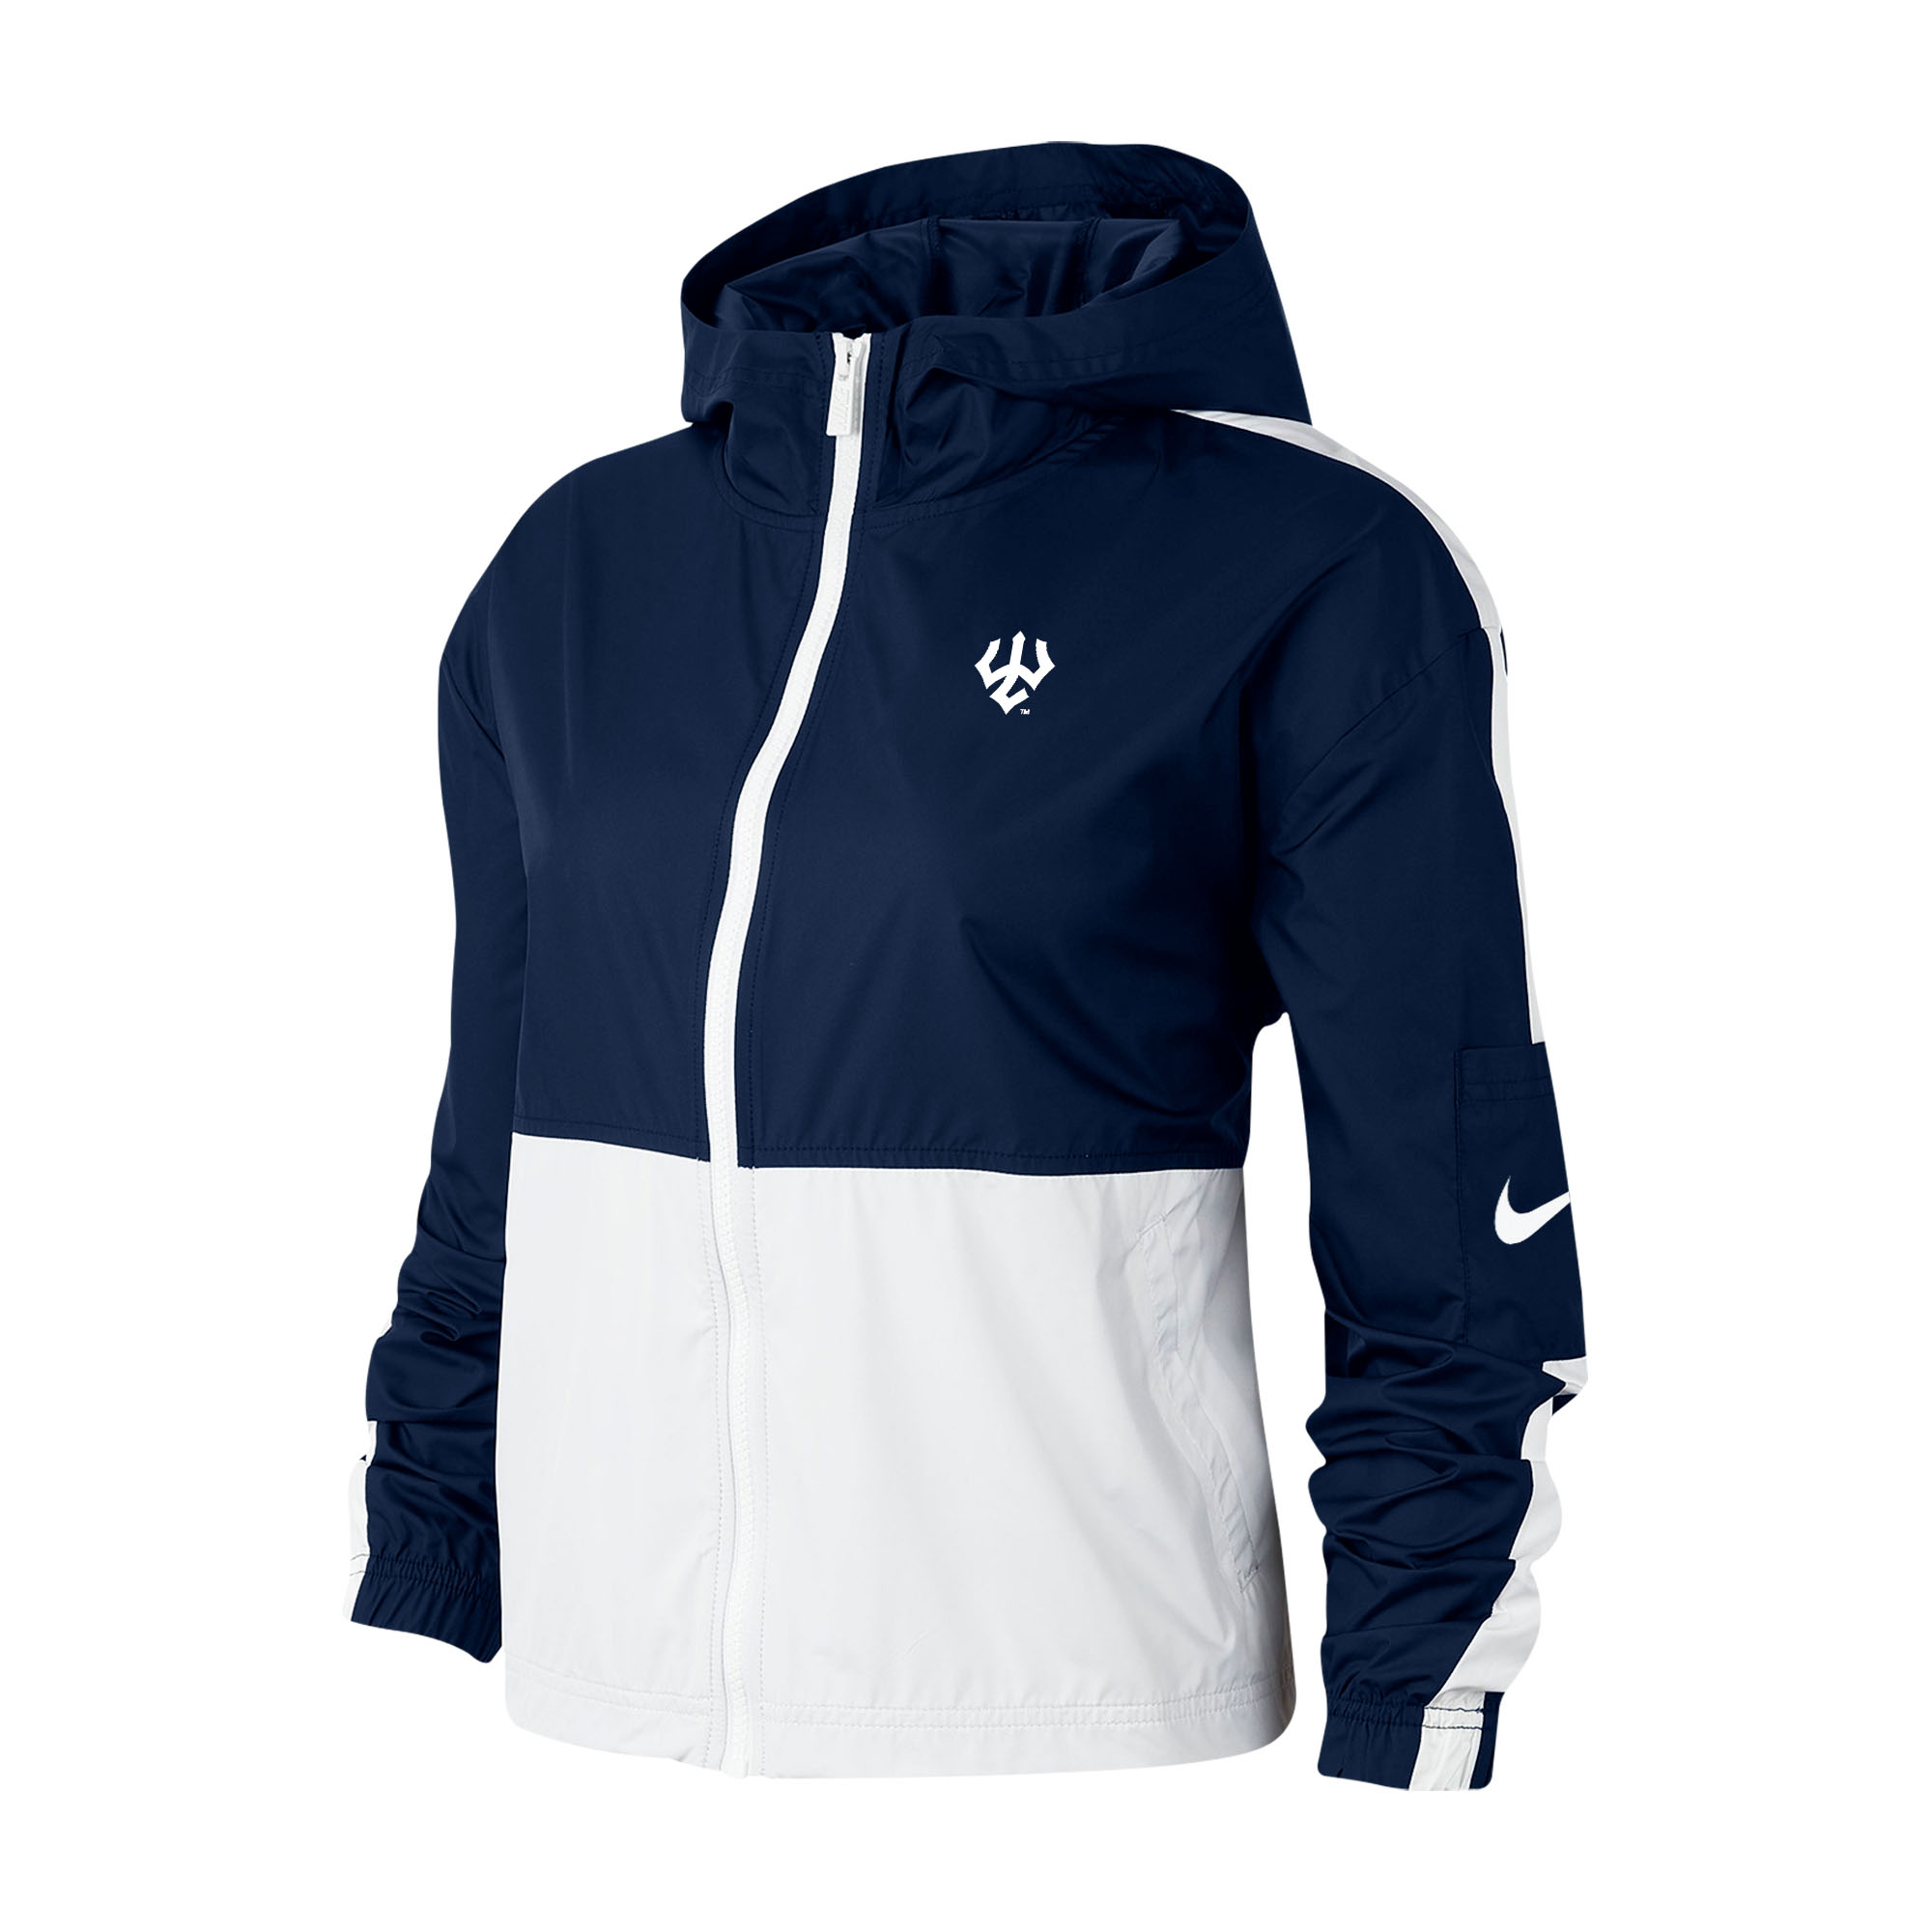 Cover Image For Nike Woven Jacket